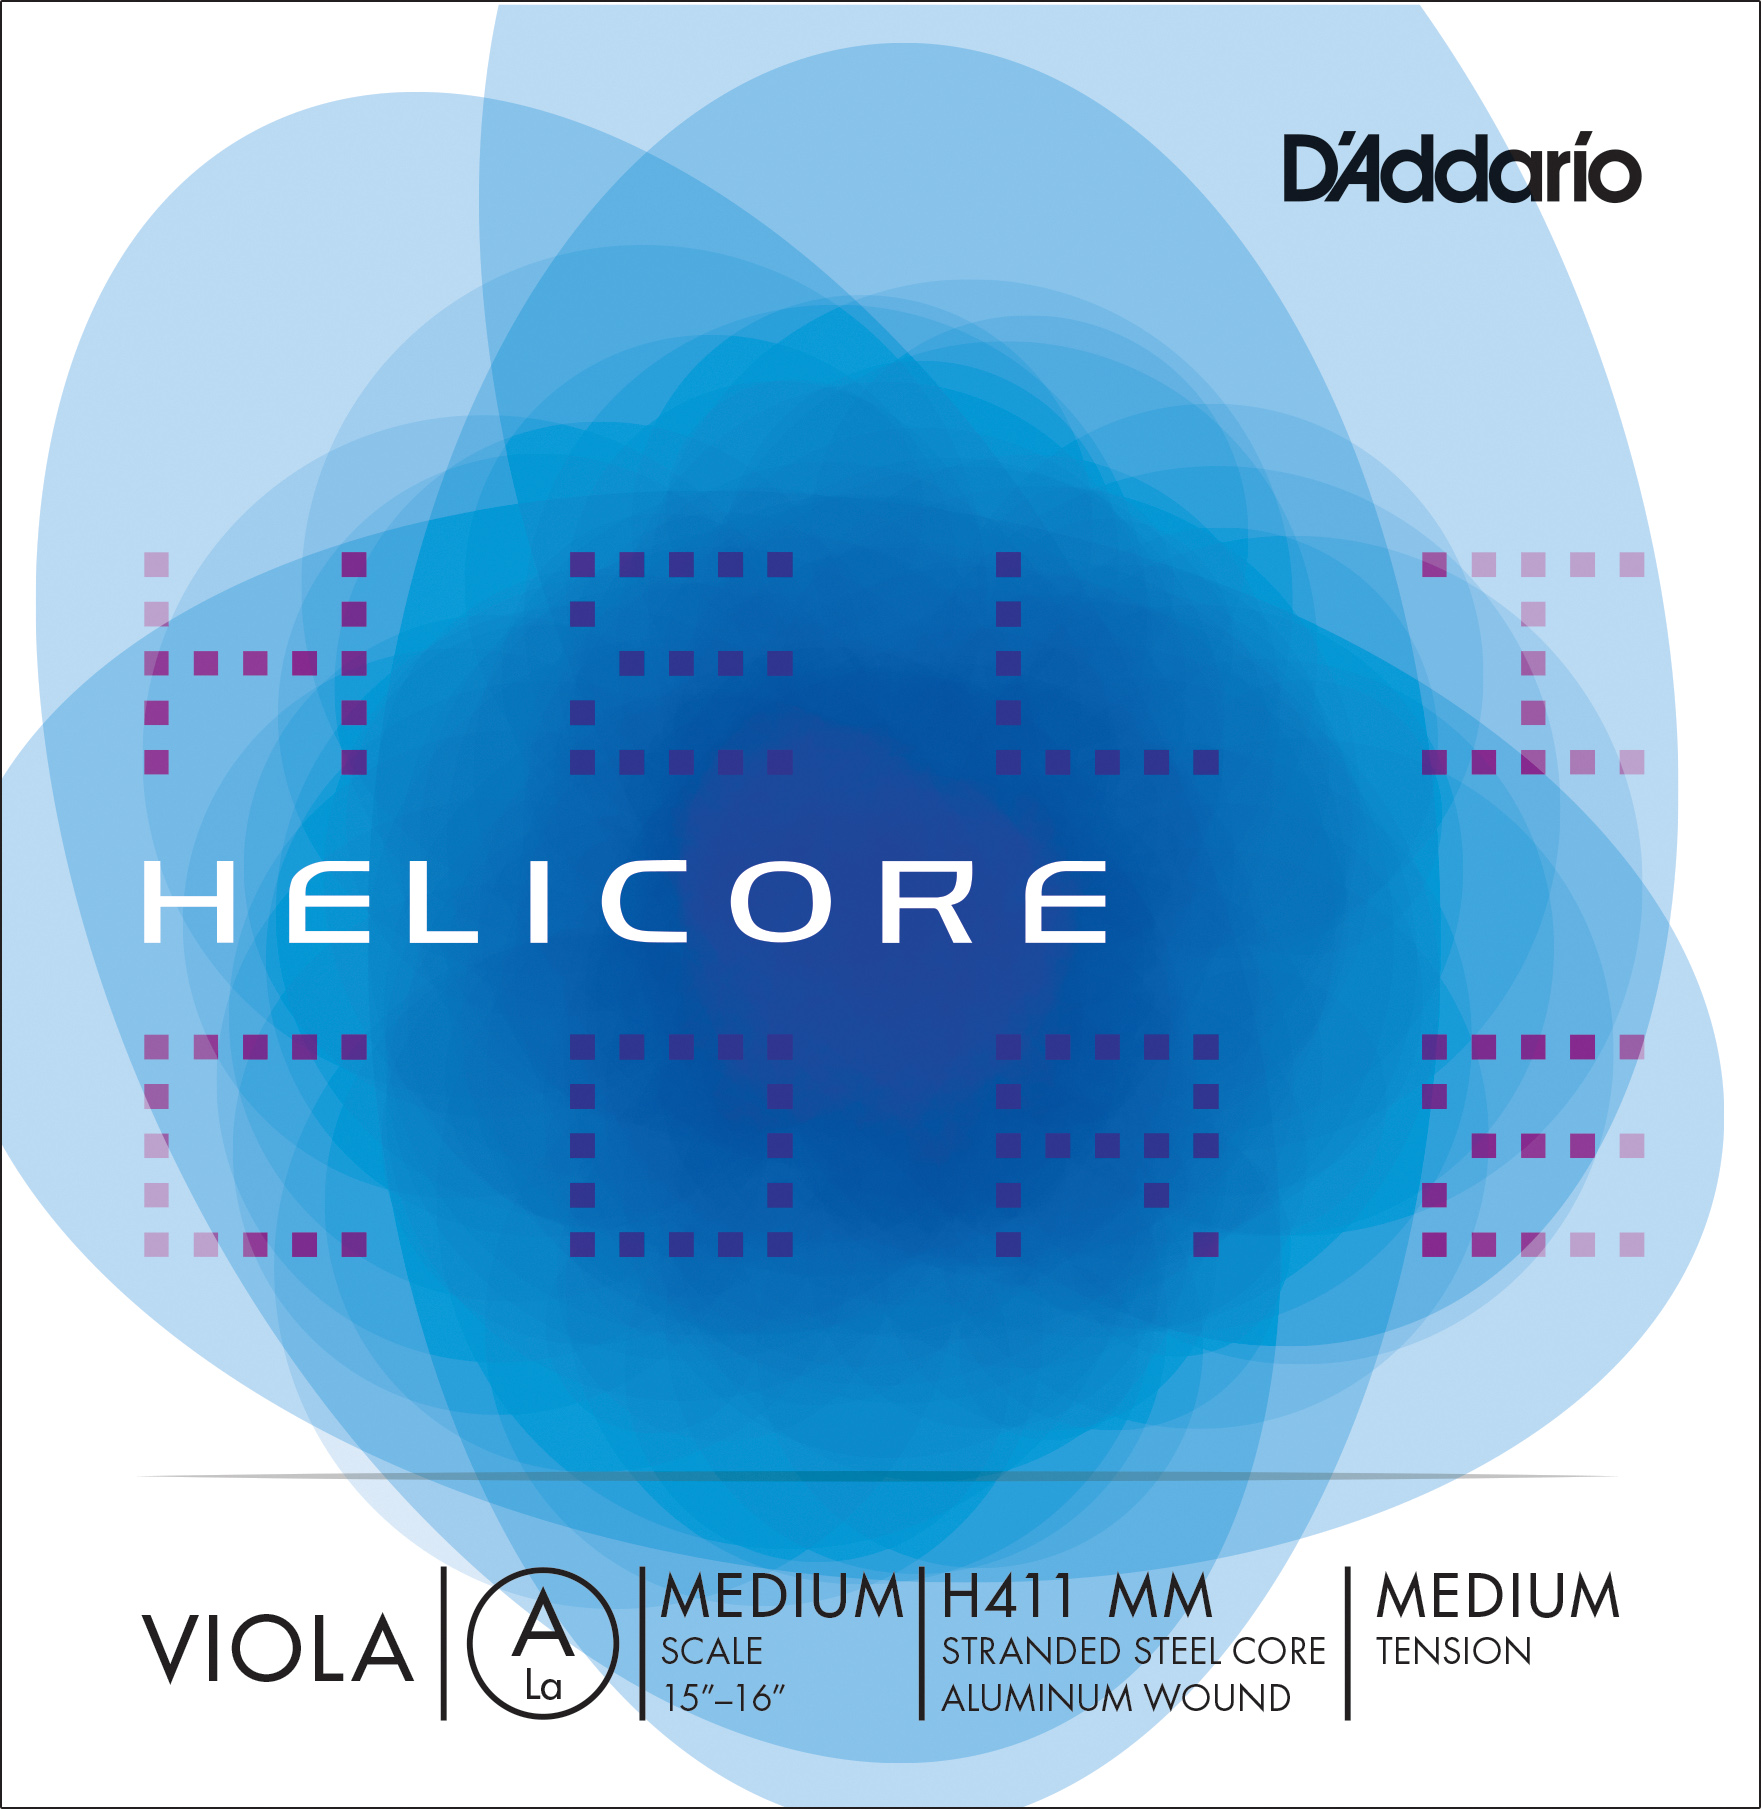 D'Addario Helicore Viola Single A String, Medium Scale, Medium Tension